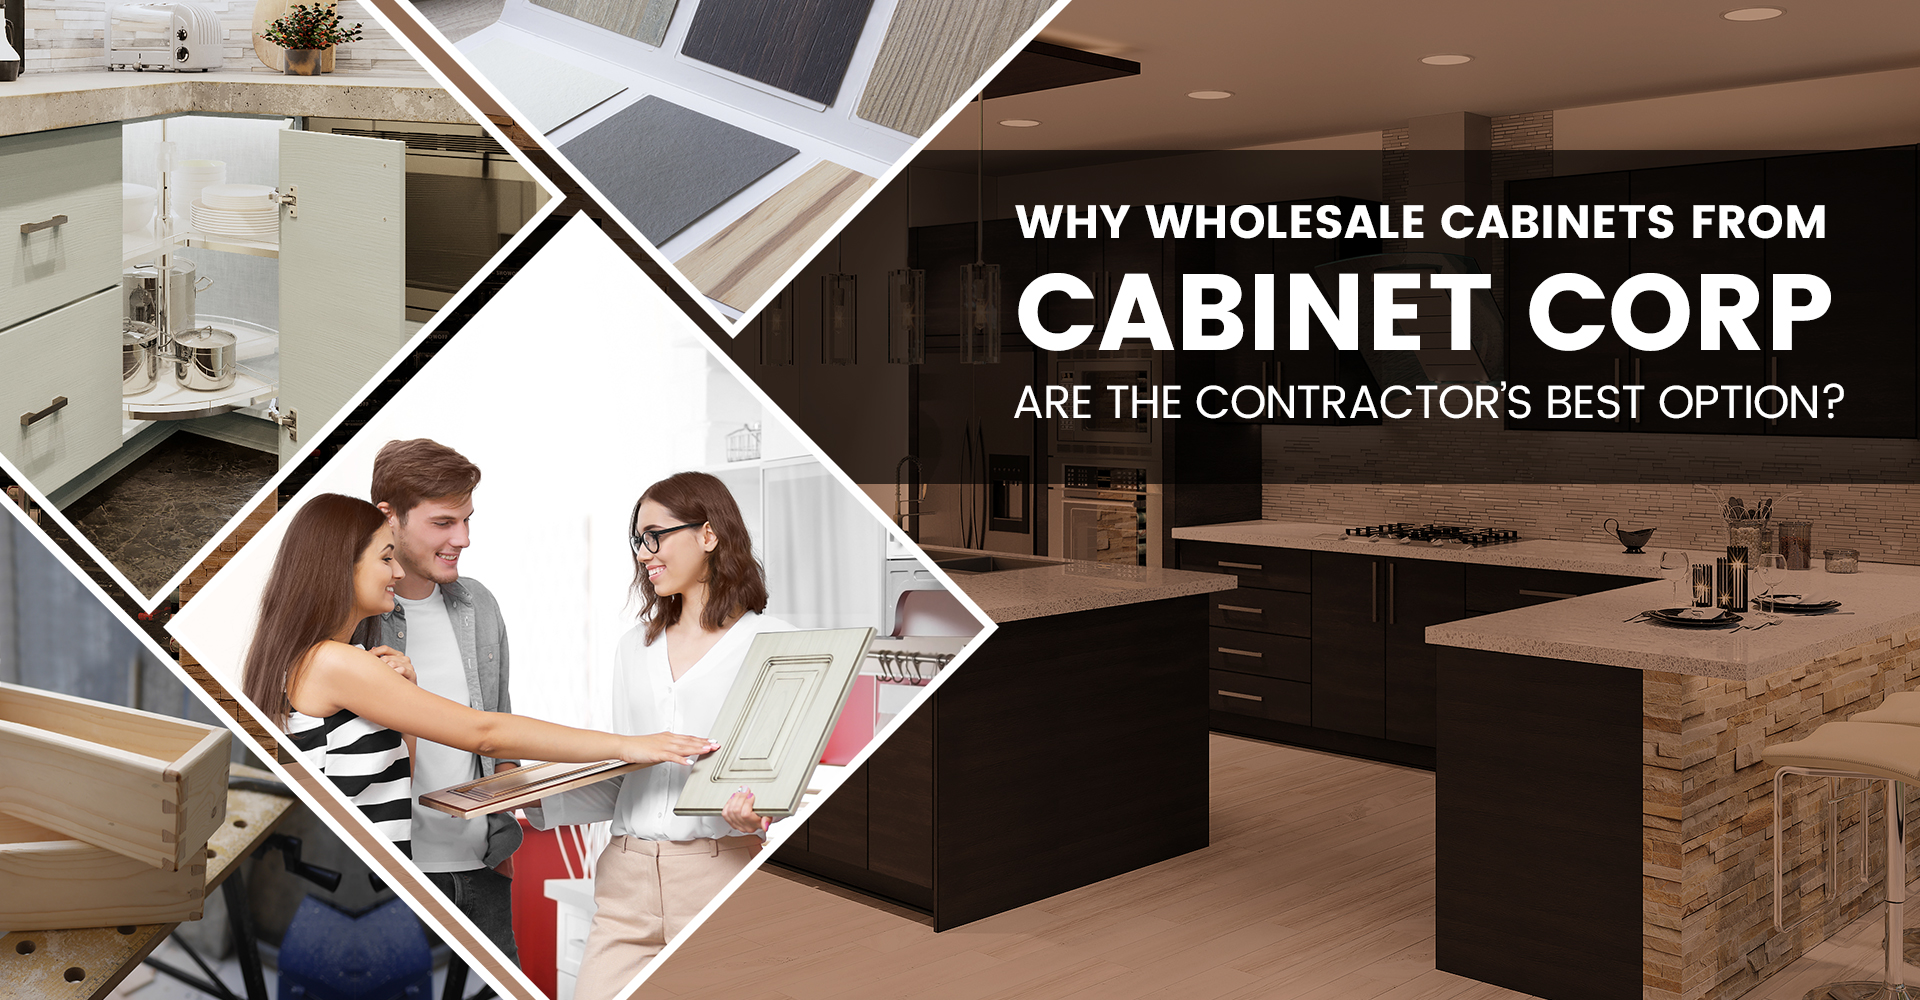 Why Wholesale Cabinets from Cabinet Corp are the Contractor's best option?